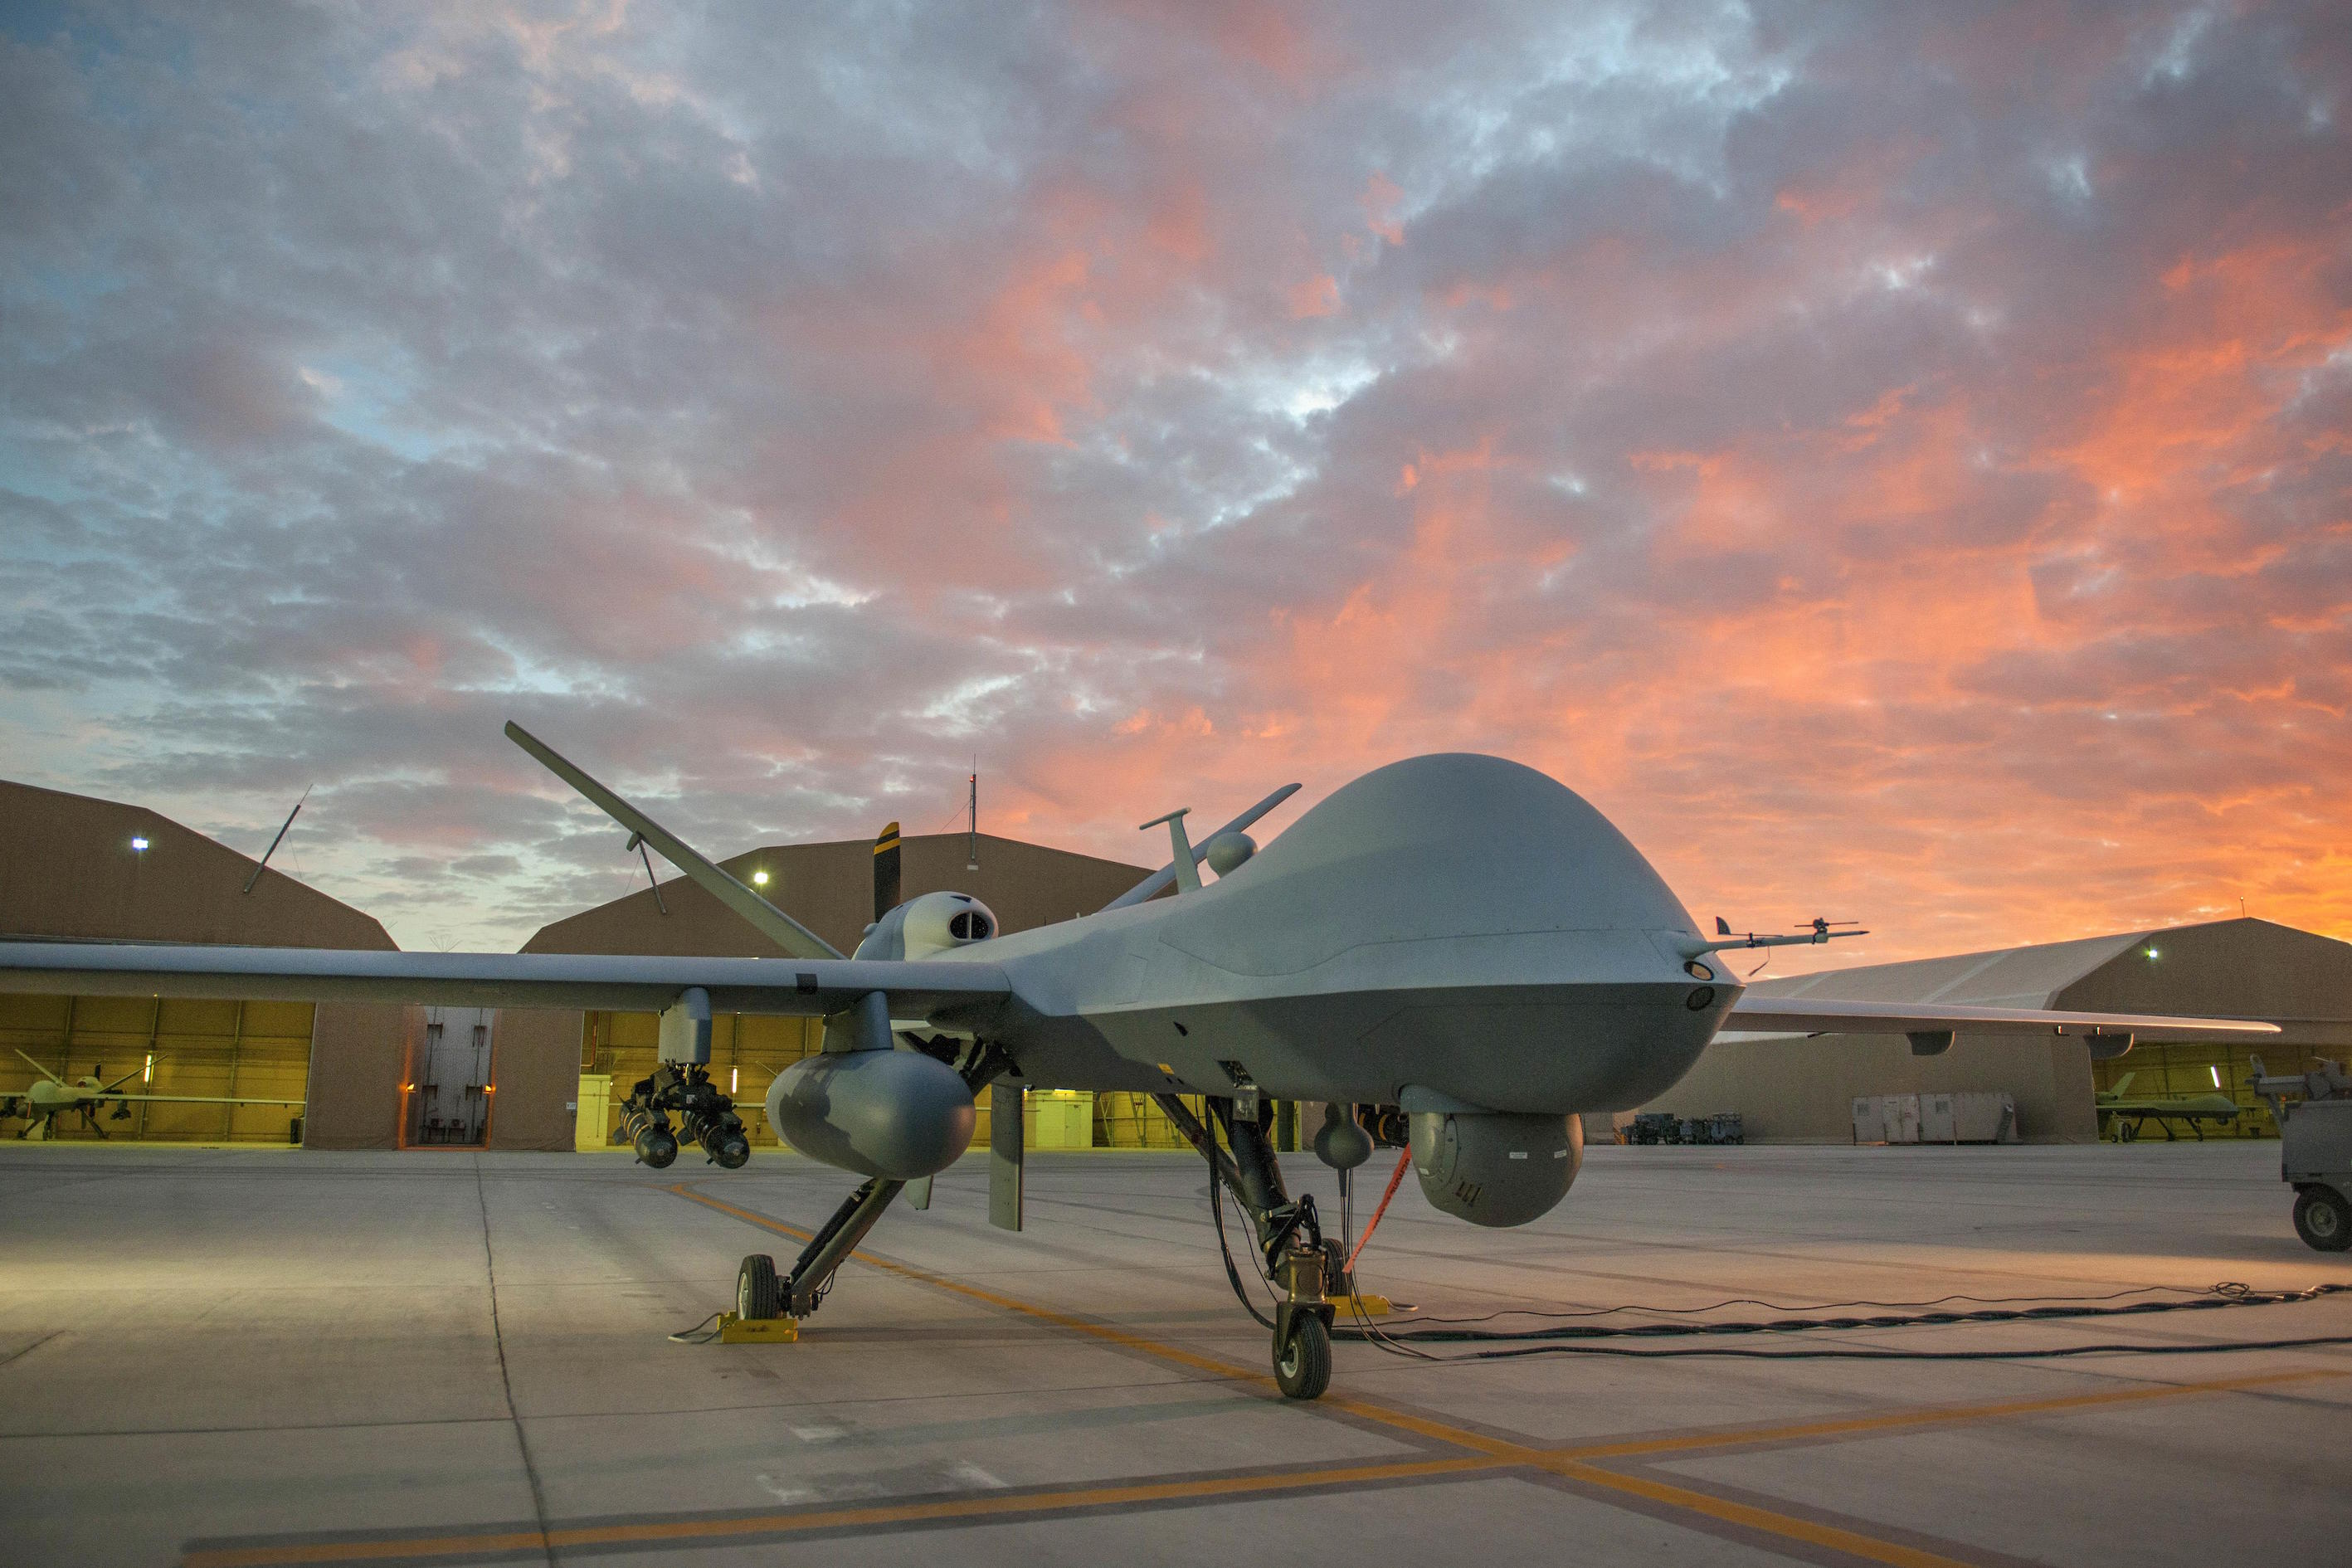 An MQ-9 Reaper equipped with an extended range modification sits on the ramp on Kandahar Airfield, Afghanistan, Dec. 6, 2015, before a sortie. U.S. Air Force photo by Tech. Sgt. Robert Cloys